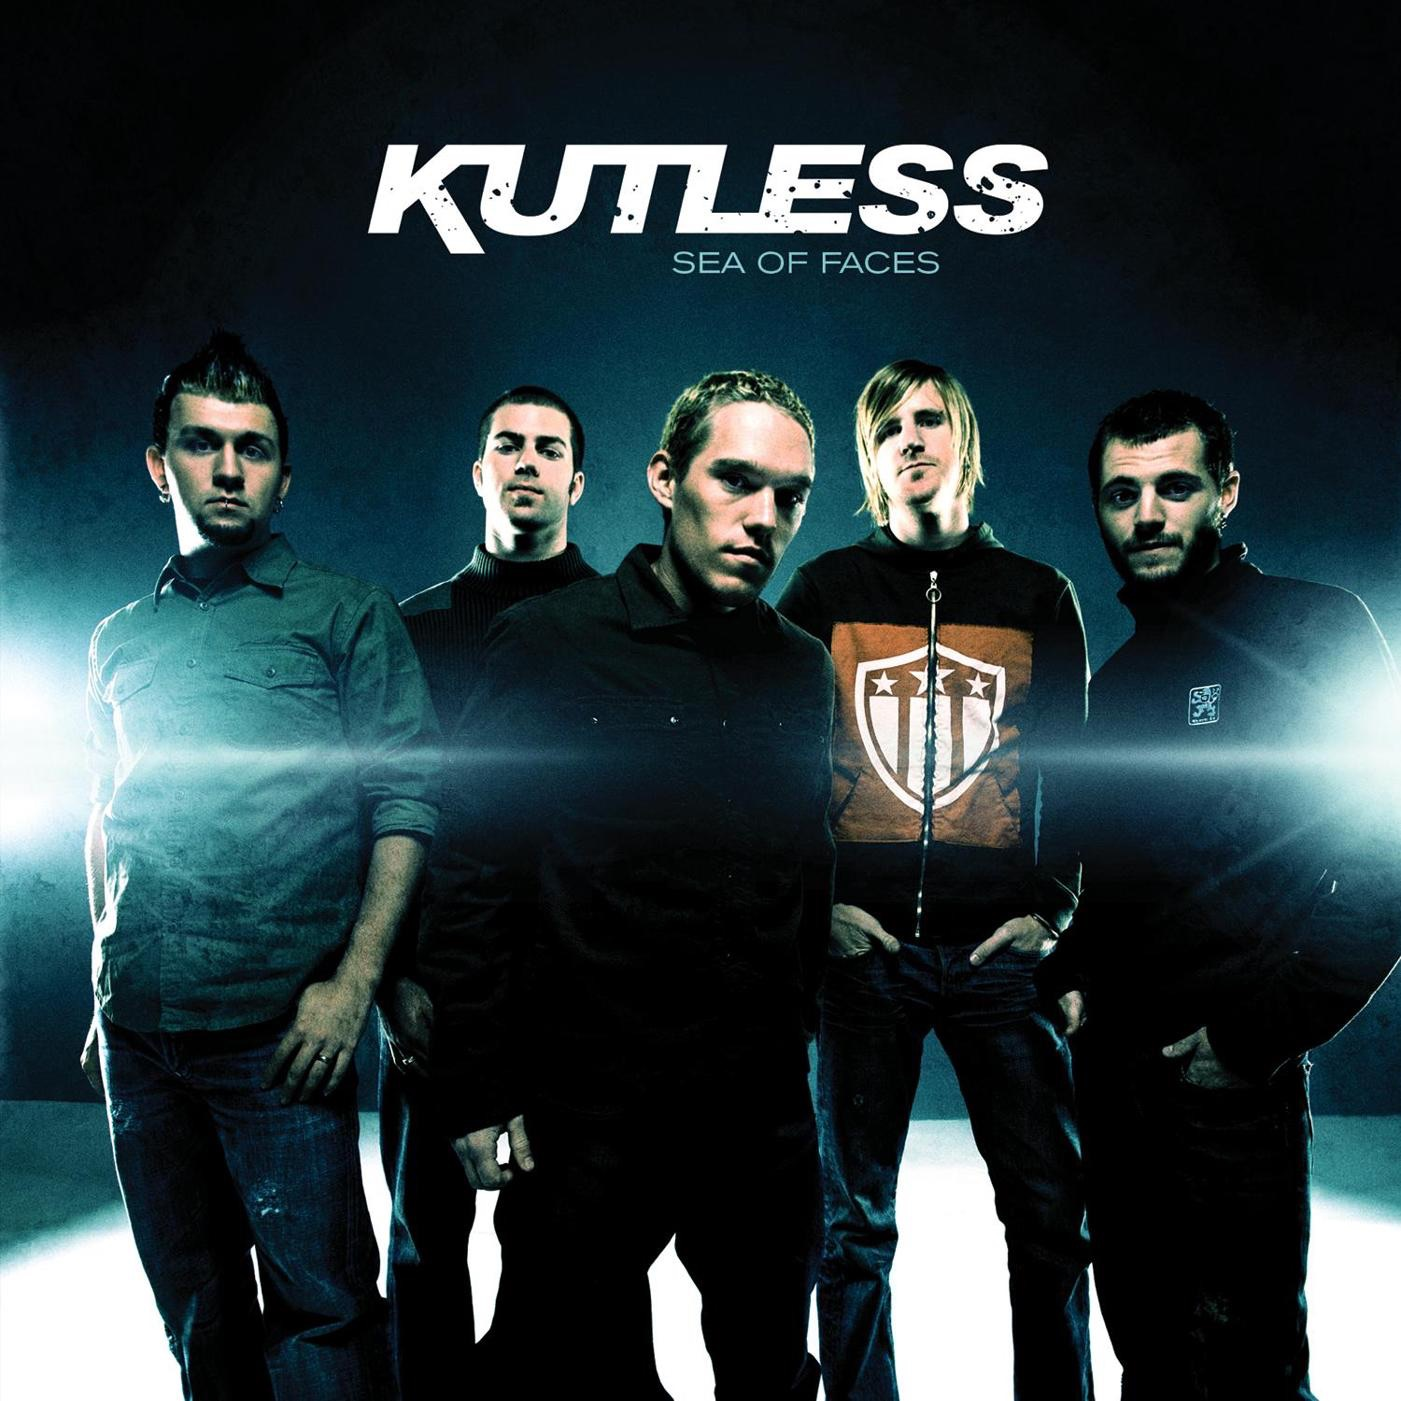 Kutless album Sea of Faces